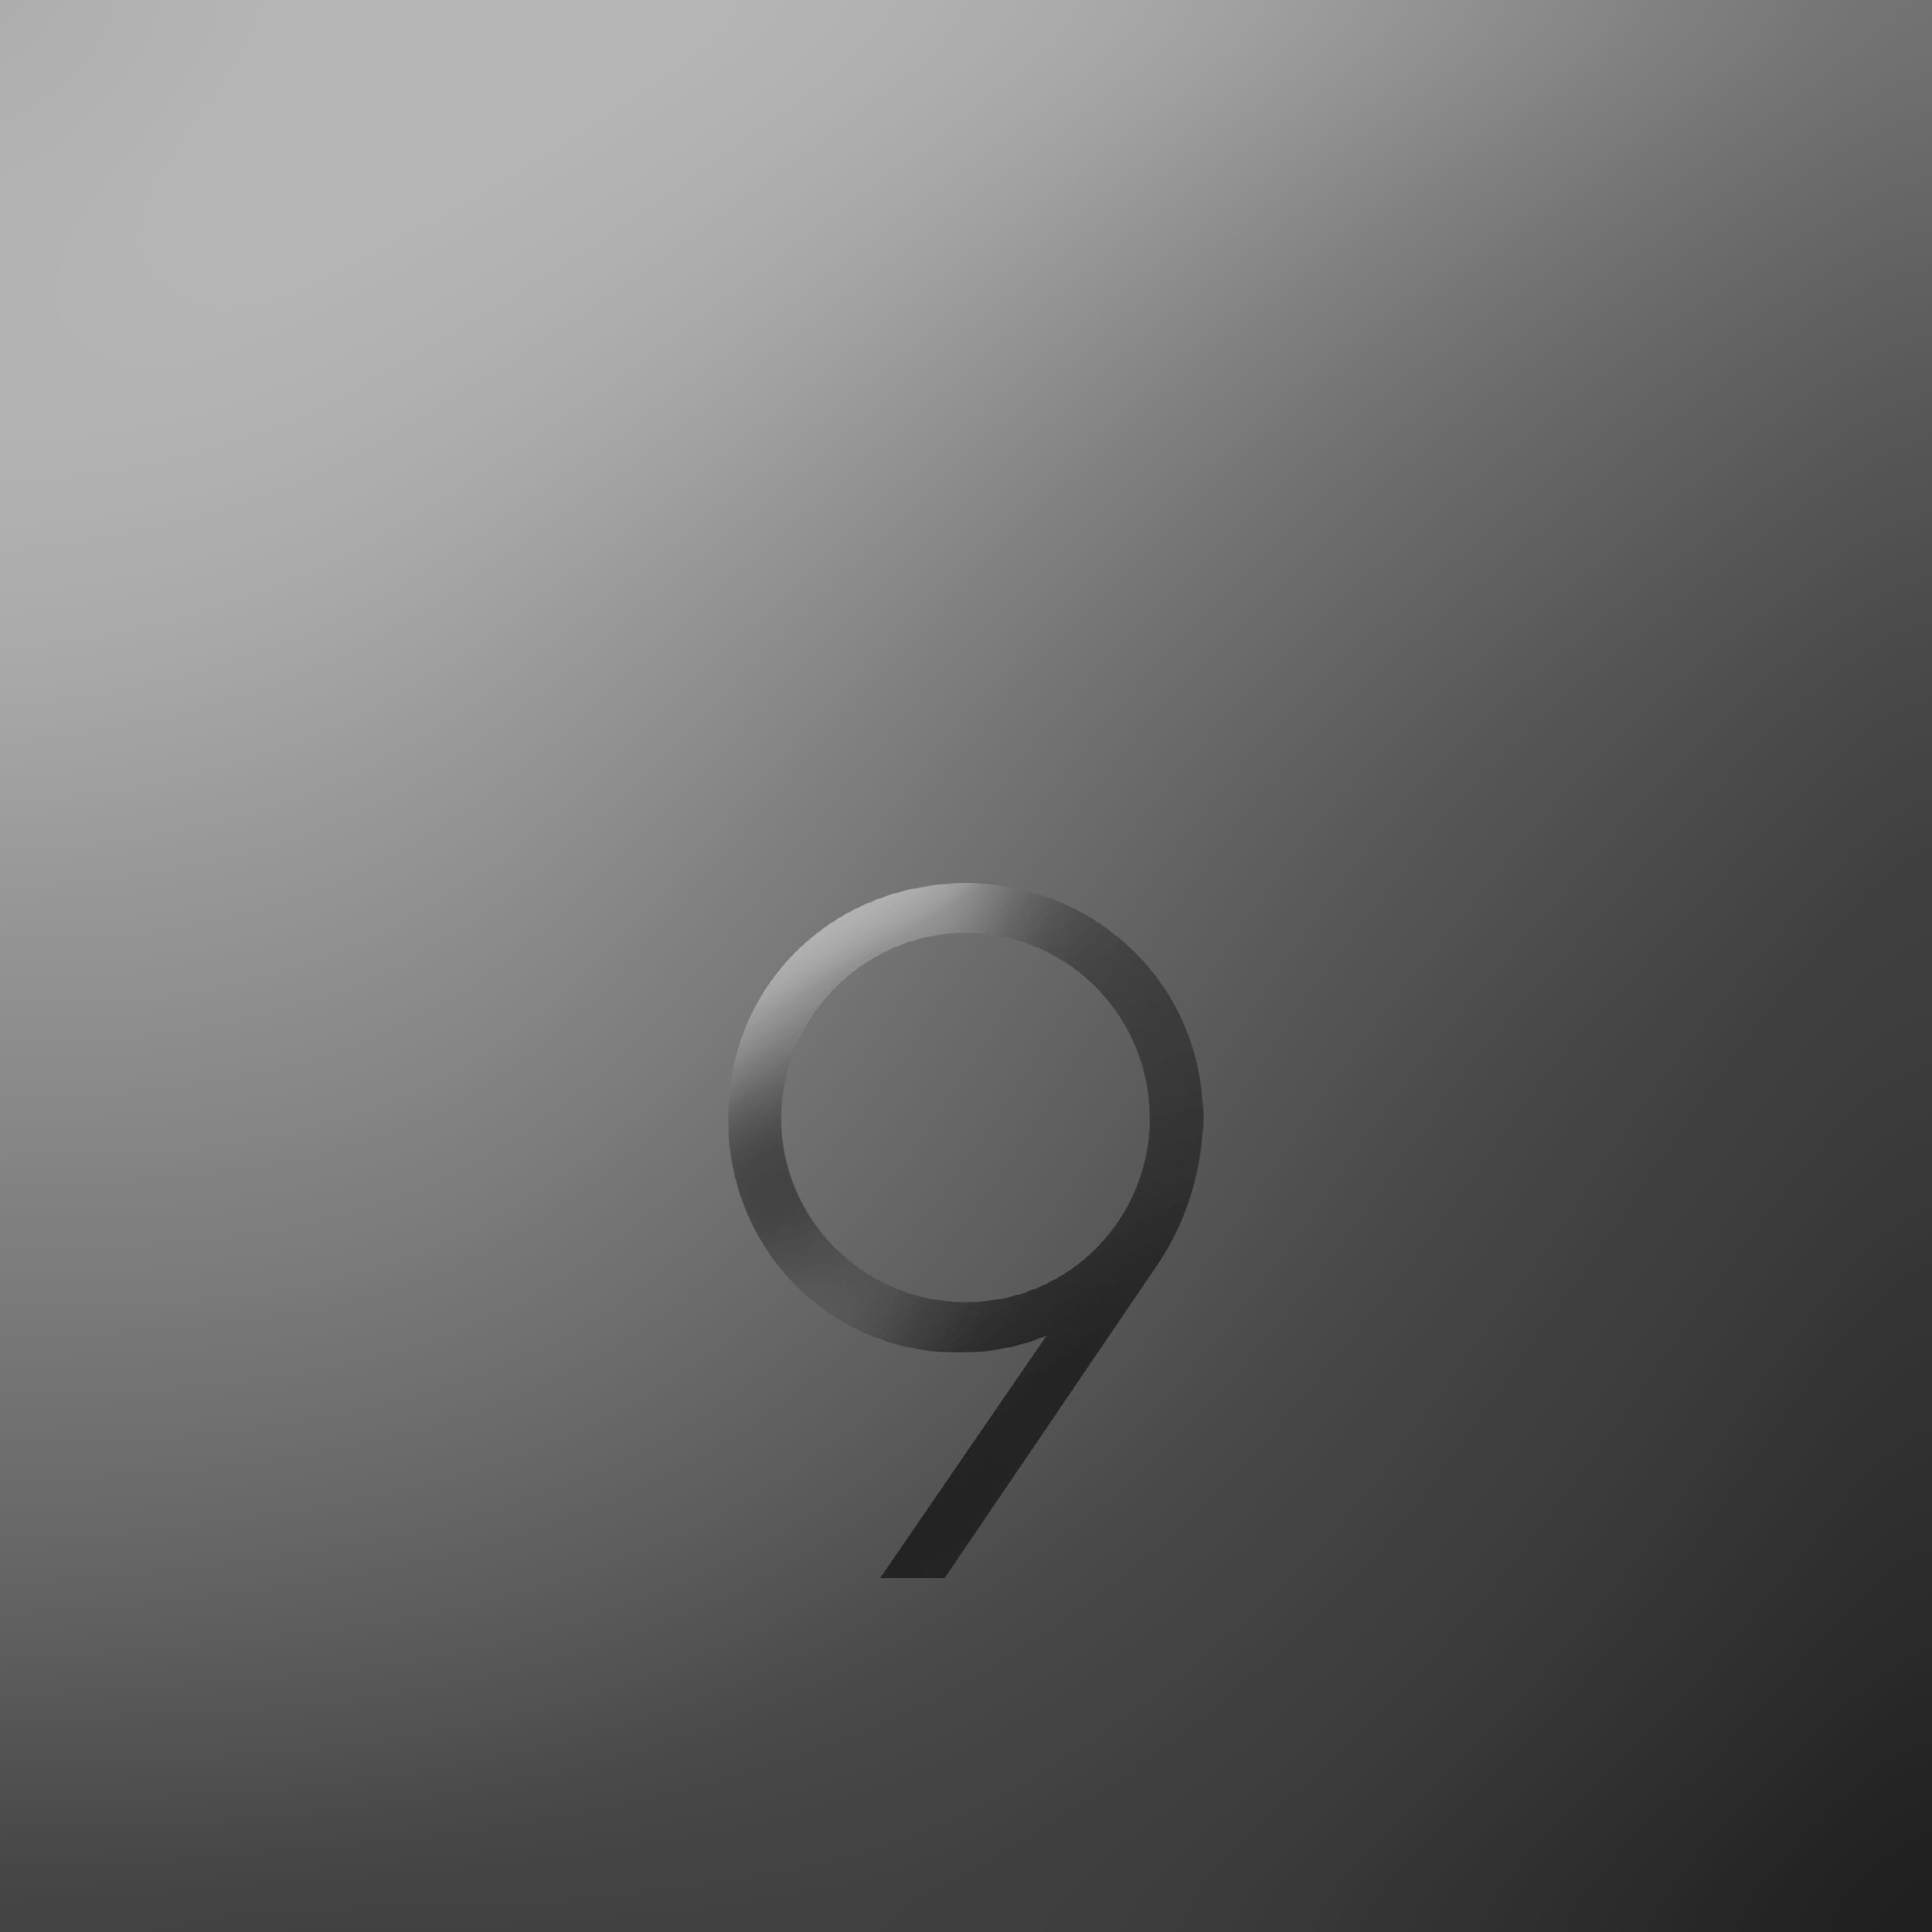 Download The Official Samsung Galaxy S9 S9 Wallpapers Here Gallery 9to5google